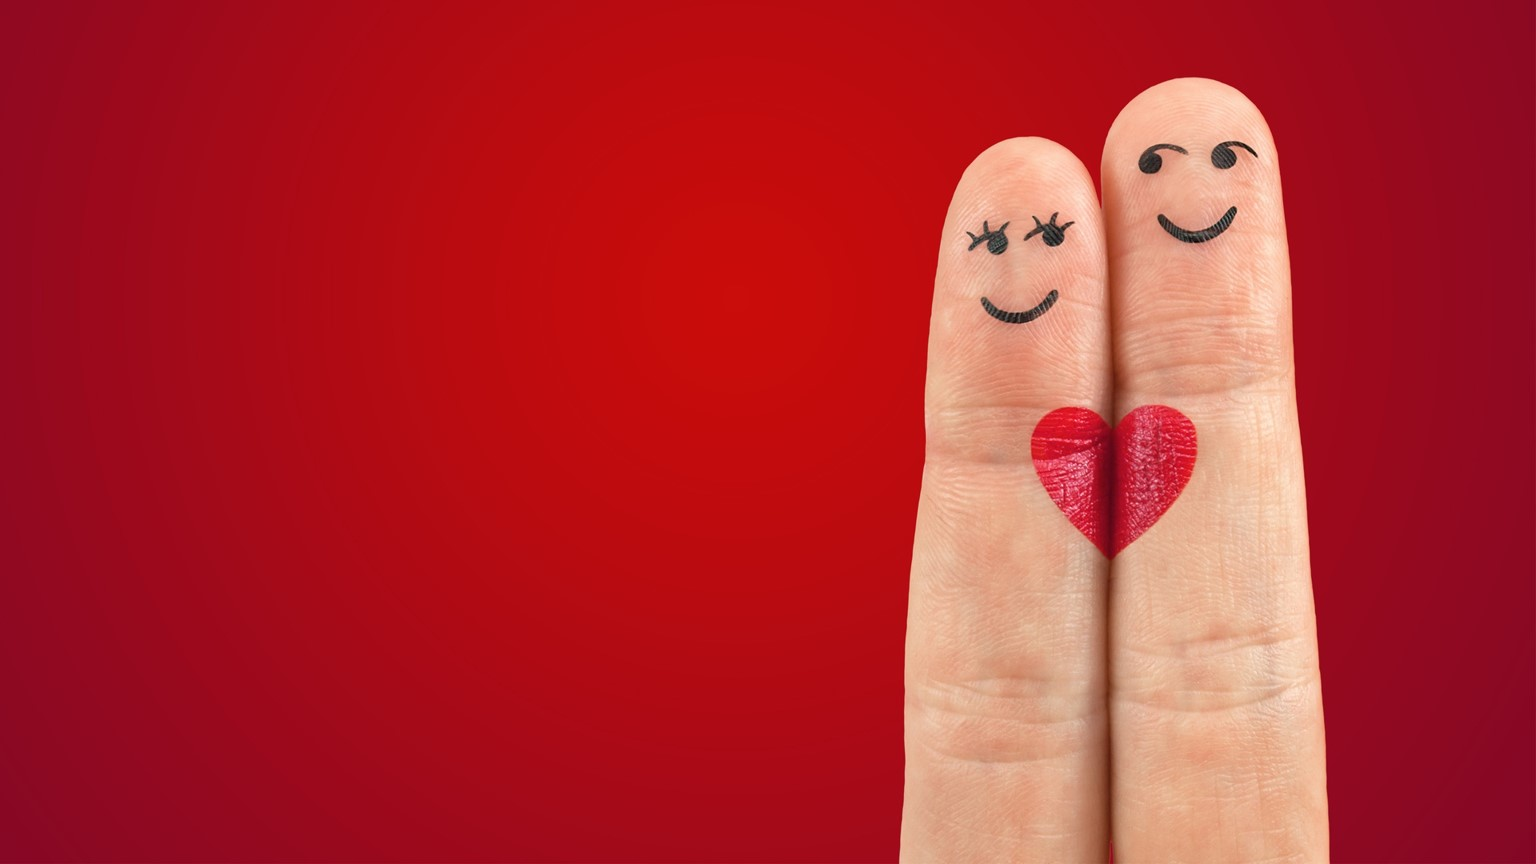 Two finger characters on a red background